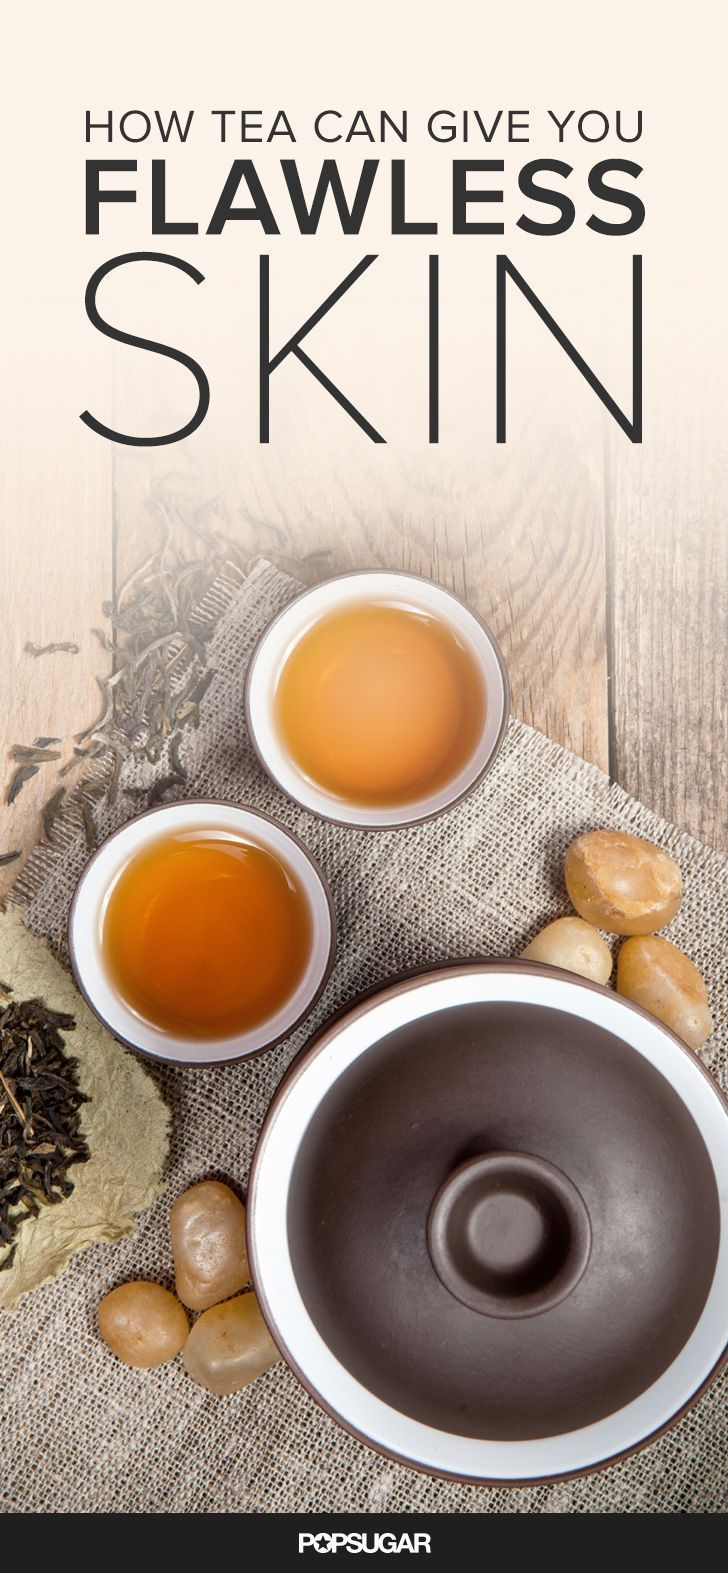 Drink yourself to clearer, brighter, younger skin with tea. You can also create DIY recipes using tea leaves for an antiaging skin treatment. Learn more with these easy beauty tips!